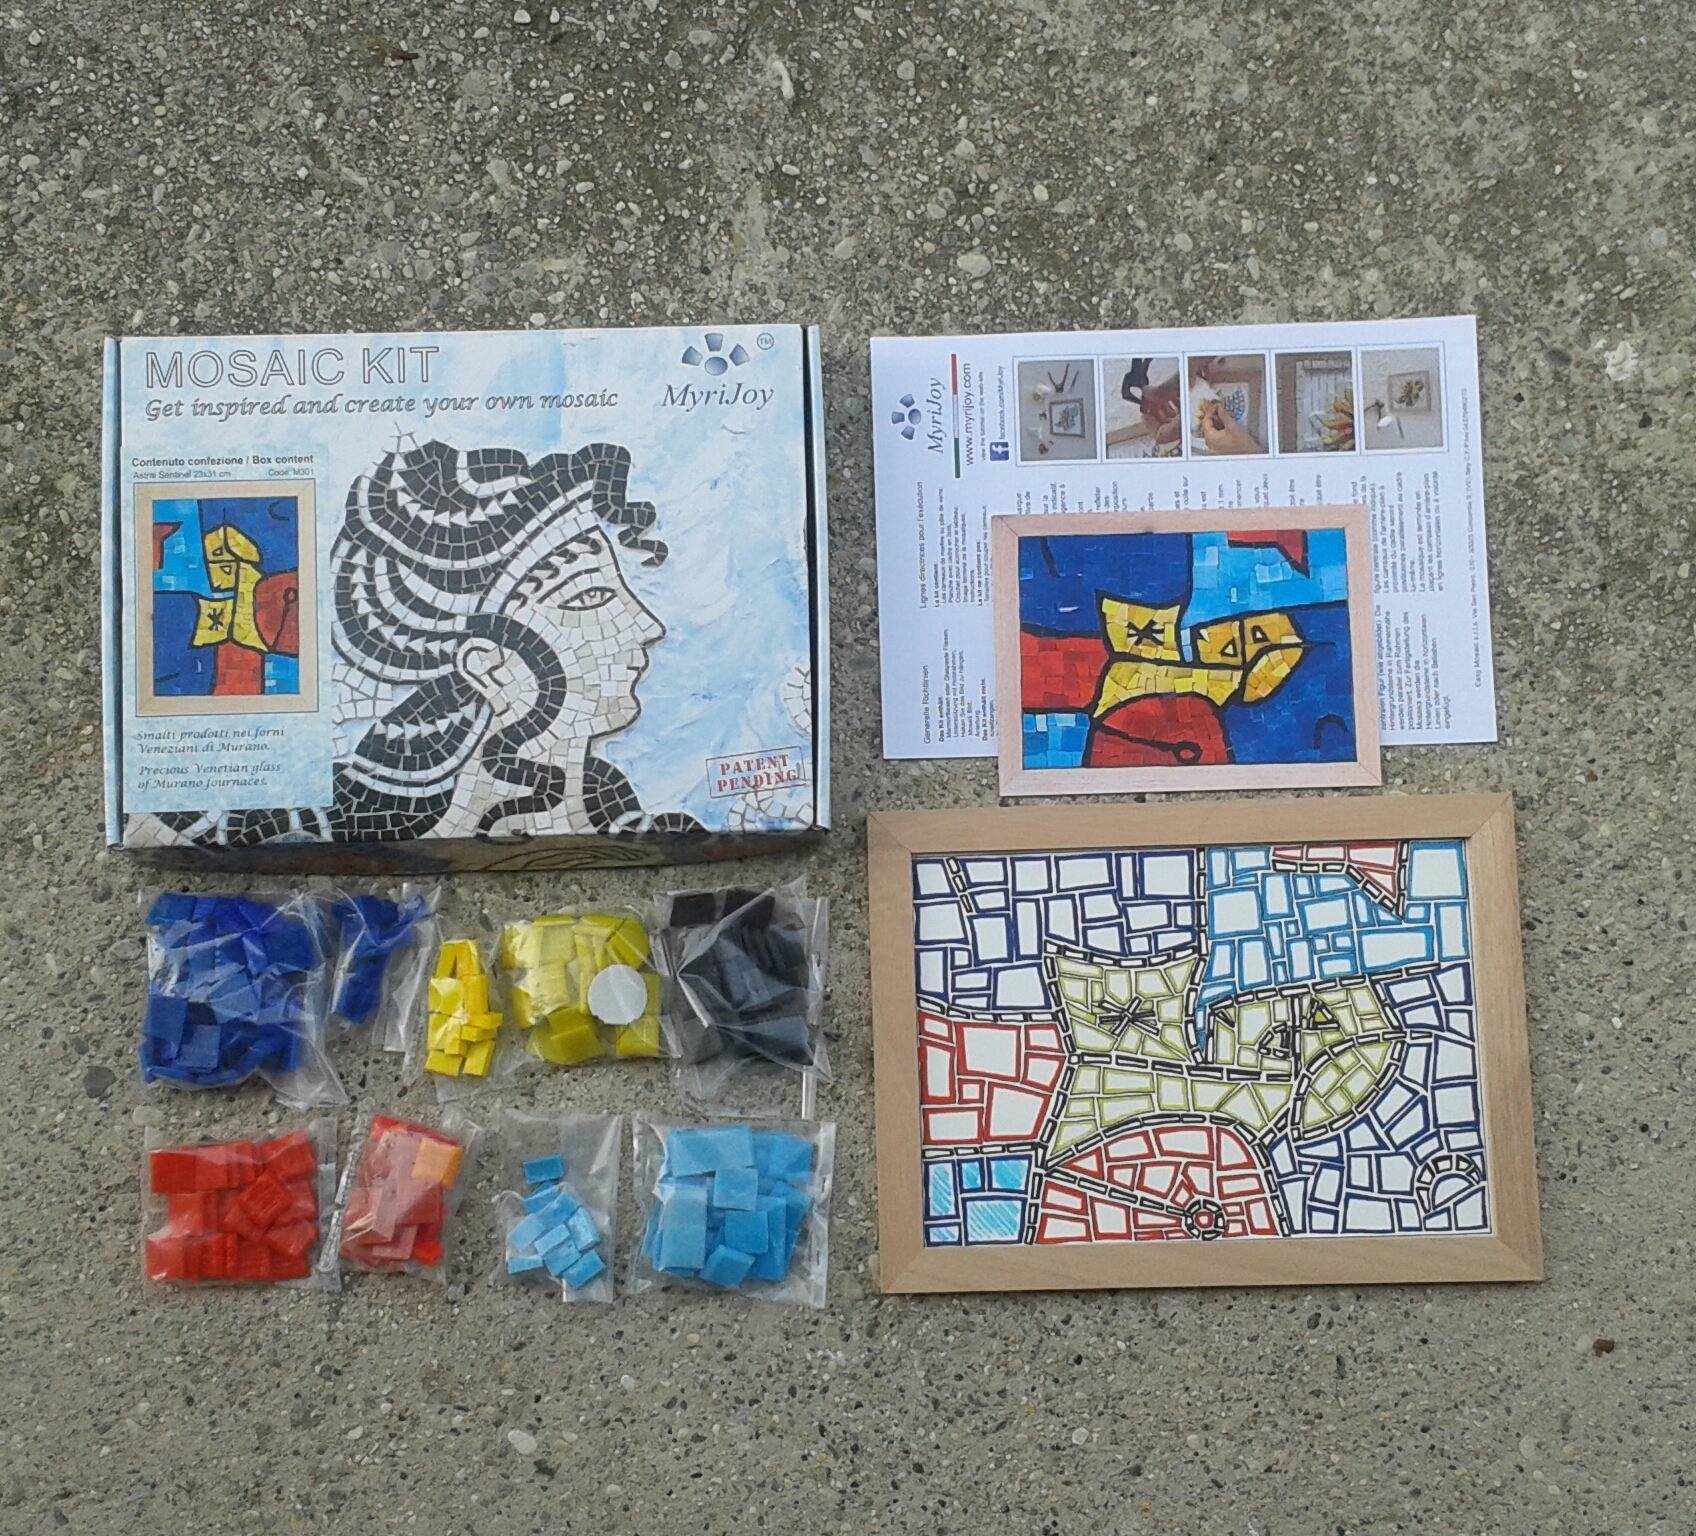 Mosaics Modern Art Gift Kit For Her – Stained Glass Mosaic Tile Inside Current Mosaic Art Kits For Adults (View 15 of 20)